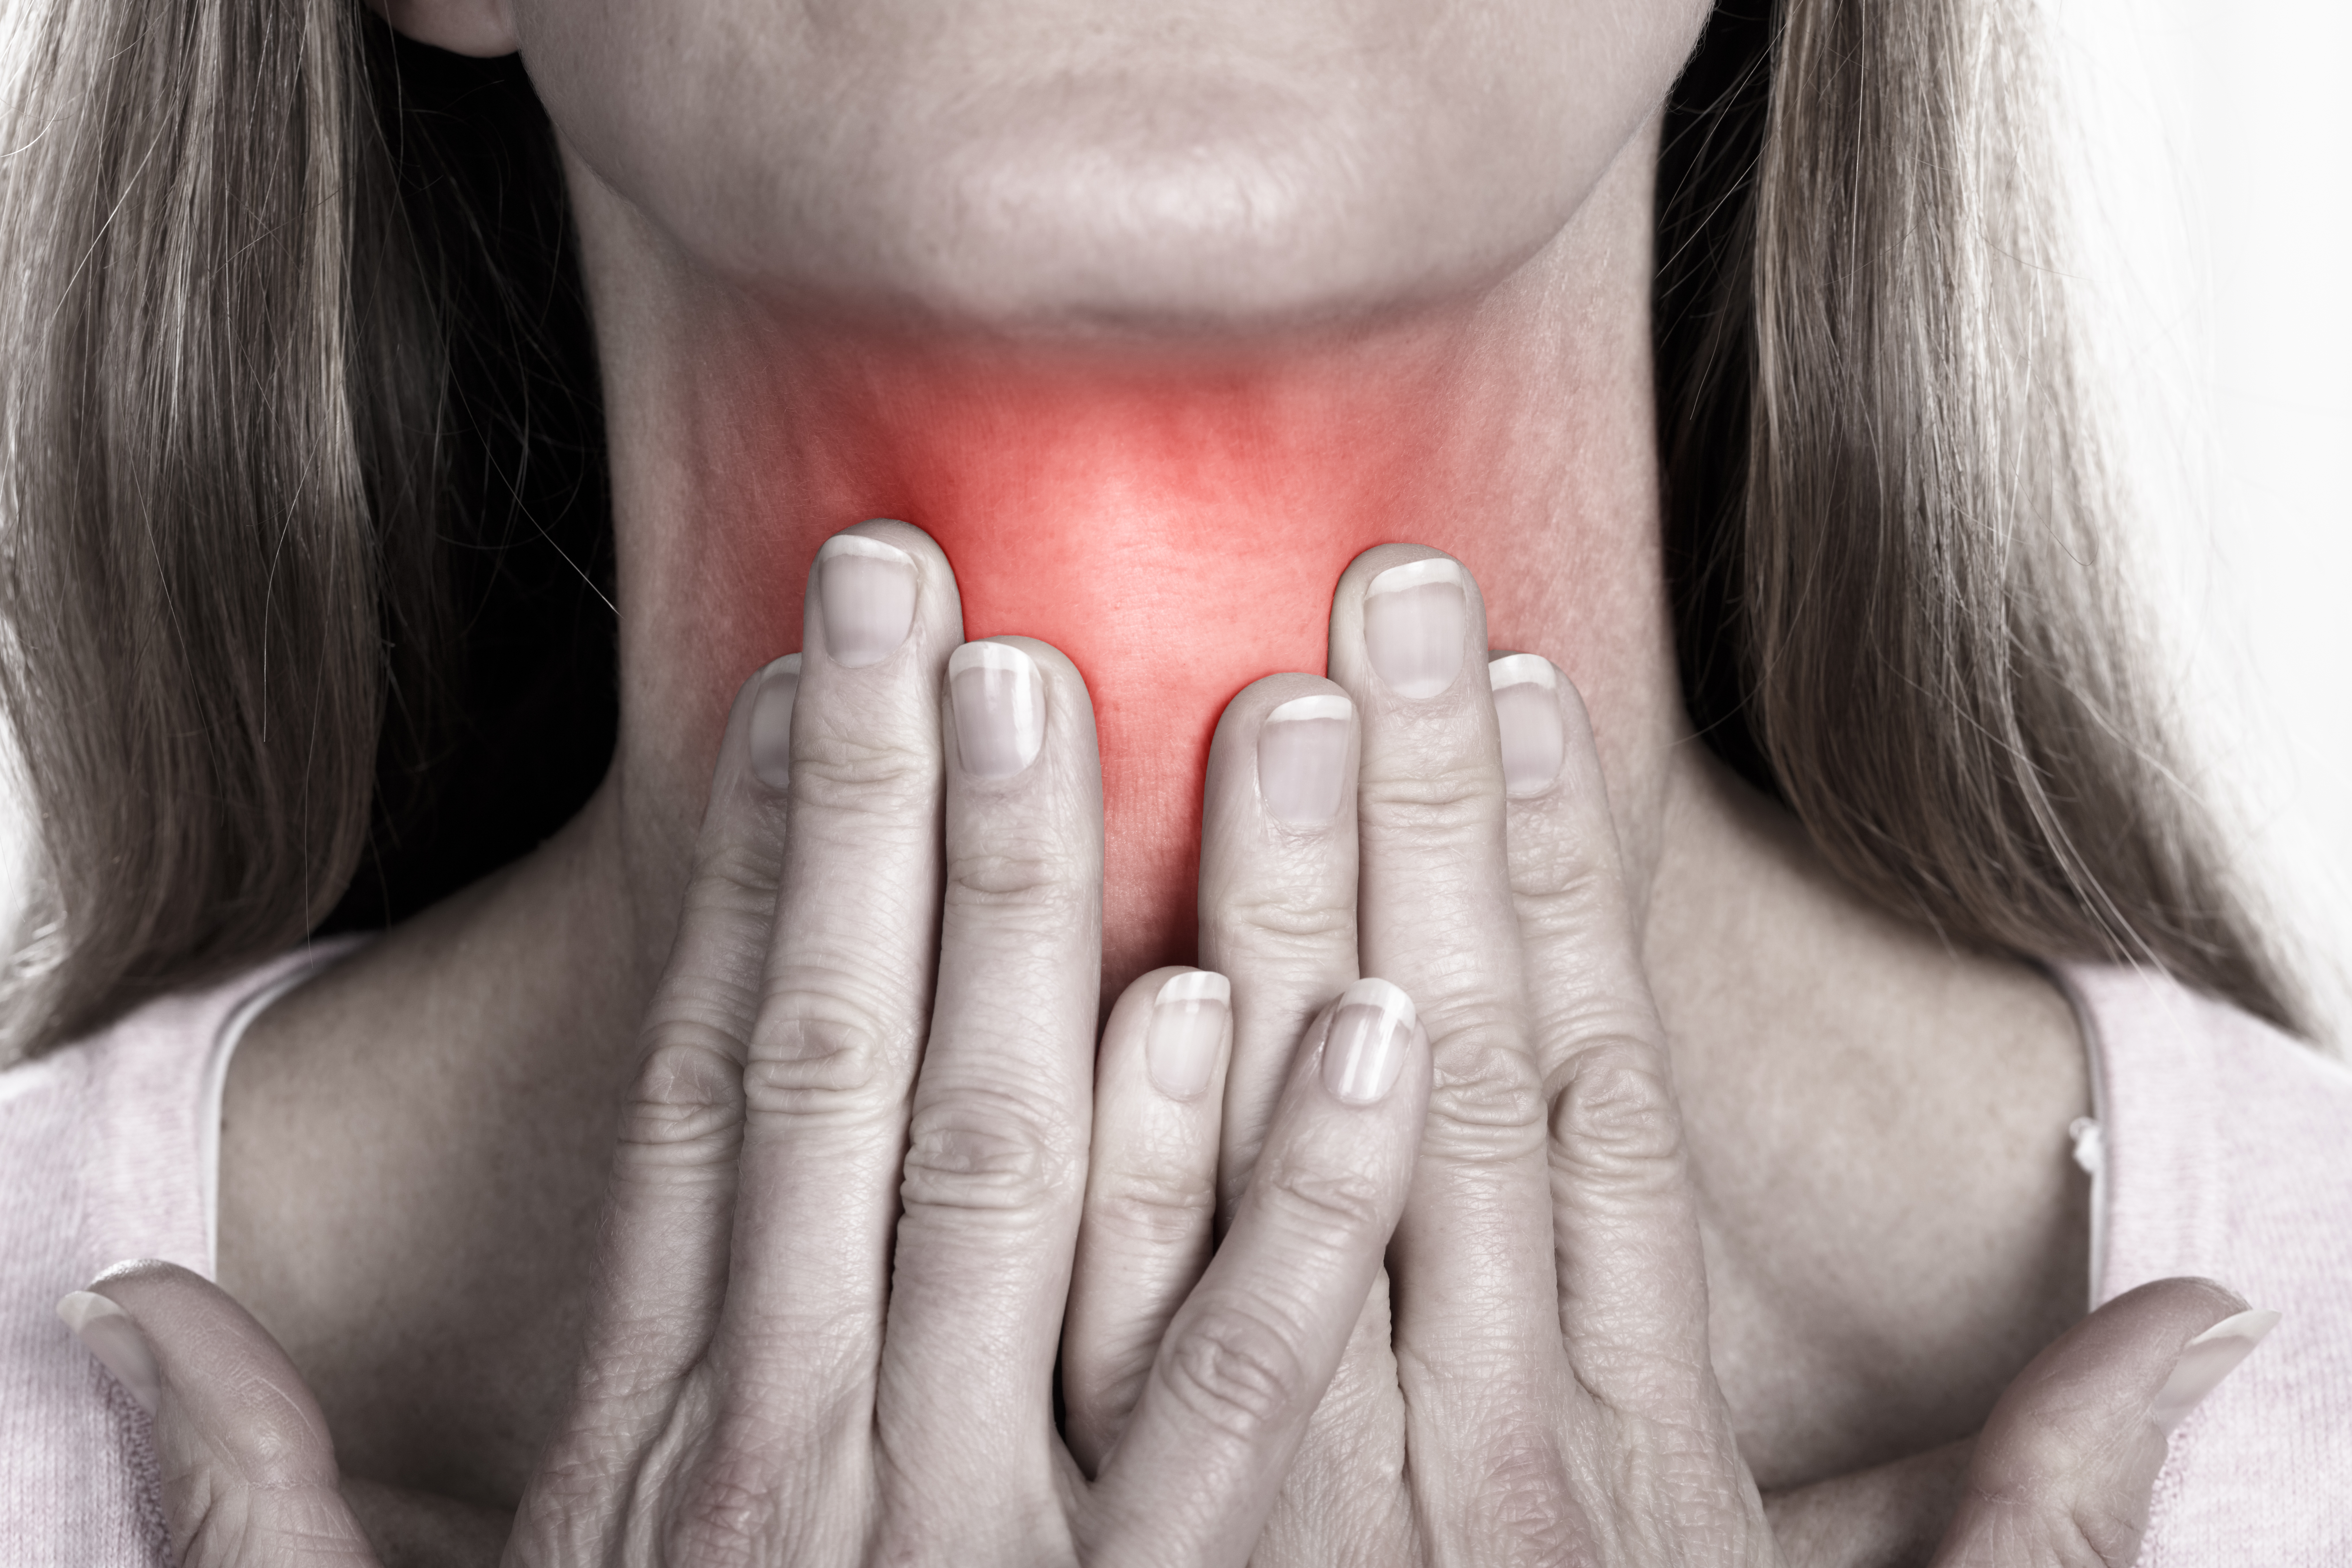 Food Feels Like Sharp Glass Pieces Going Down Esophagus: Why?